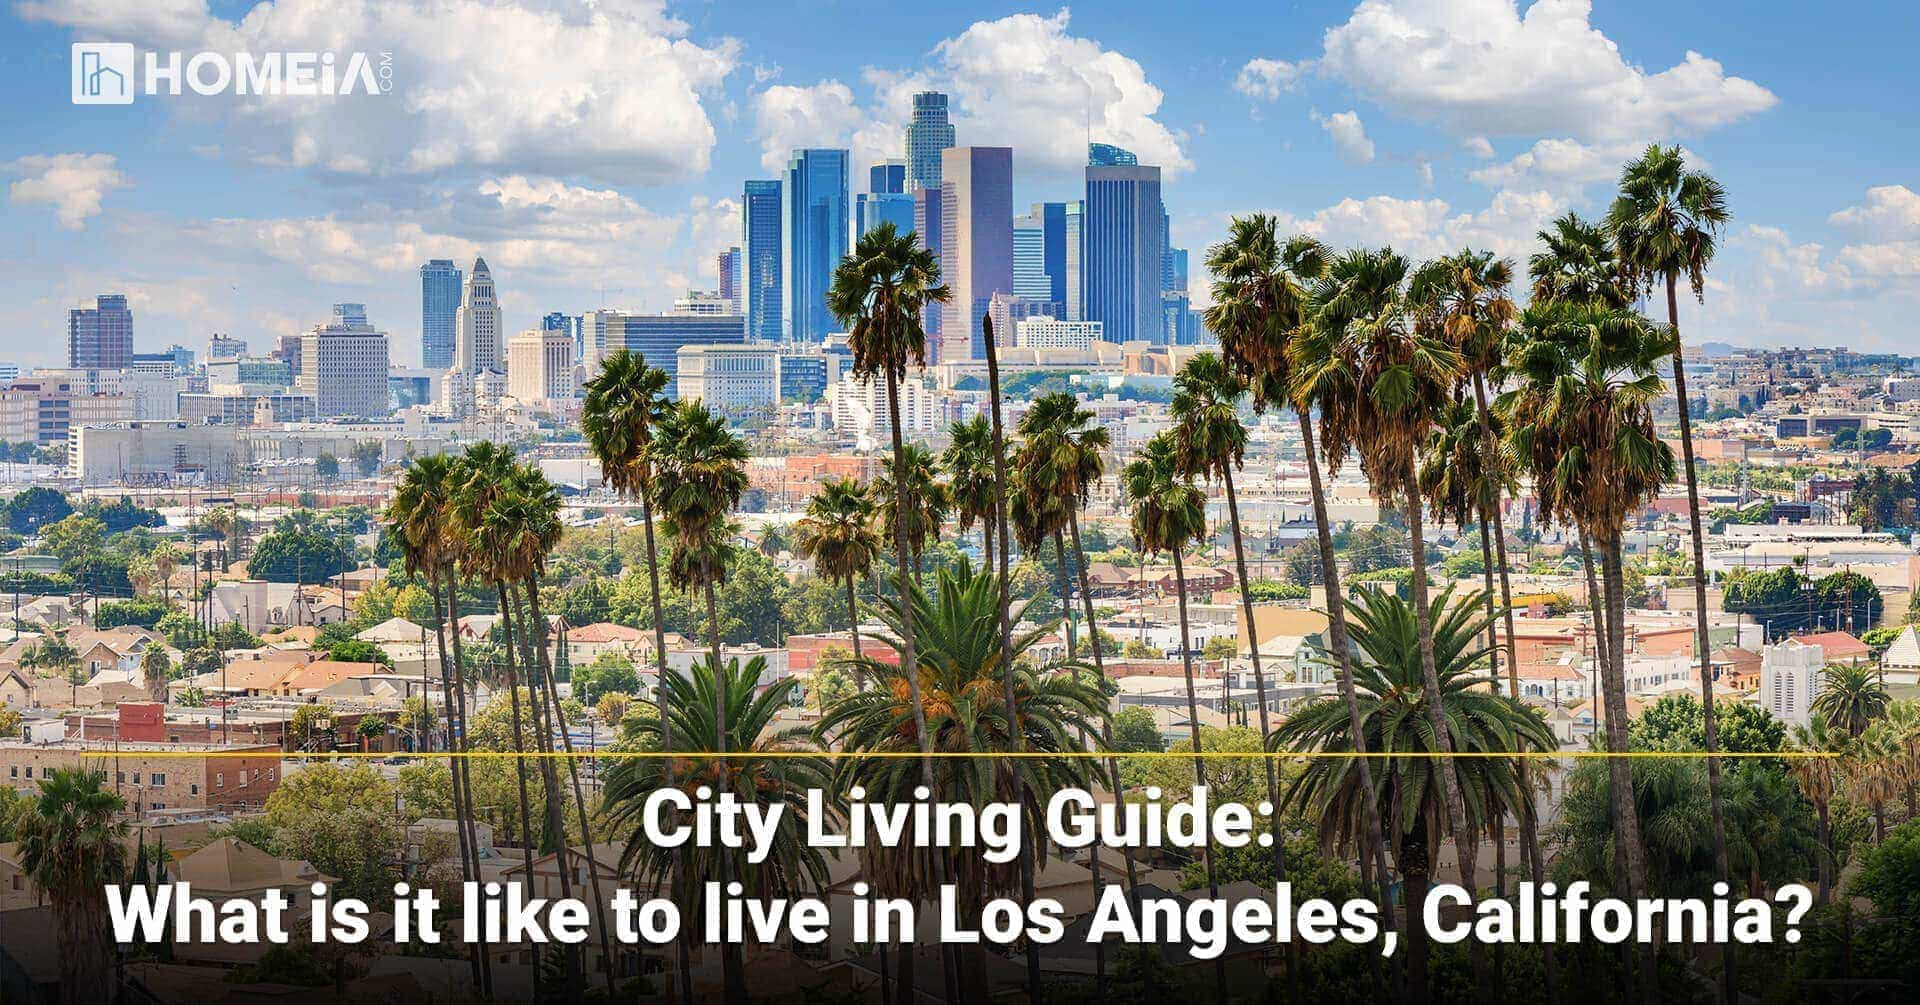 12 Things You Should Consider Before Moving to Los Angeles, California